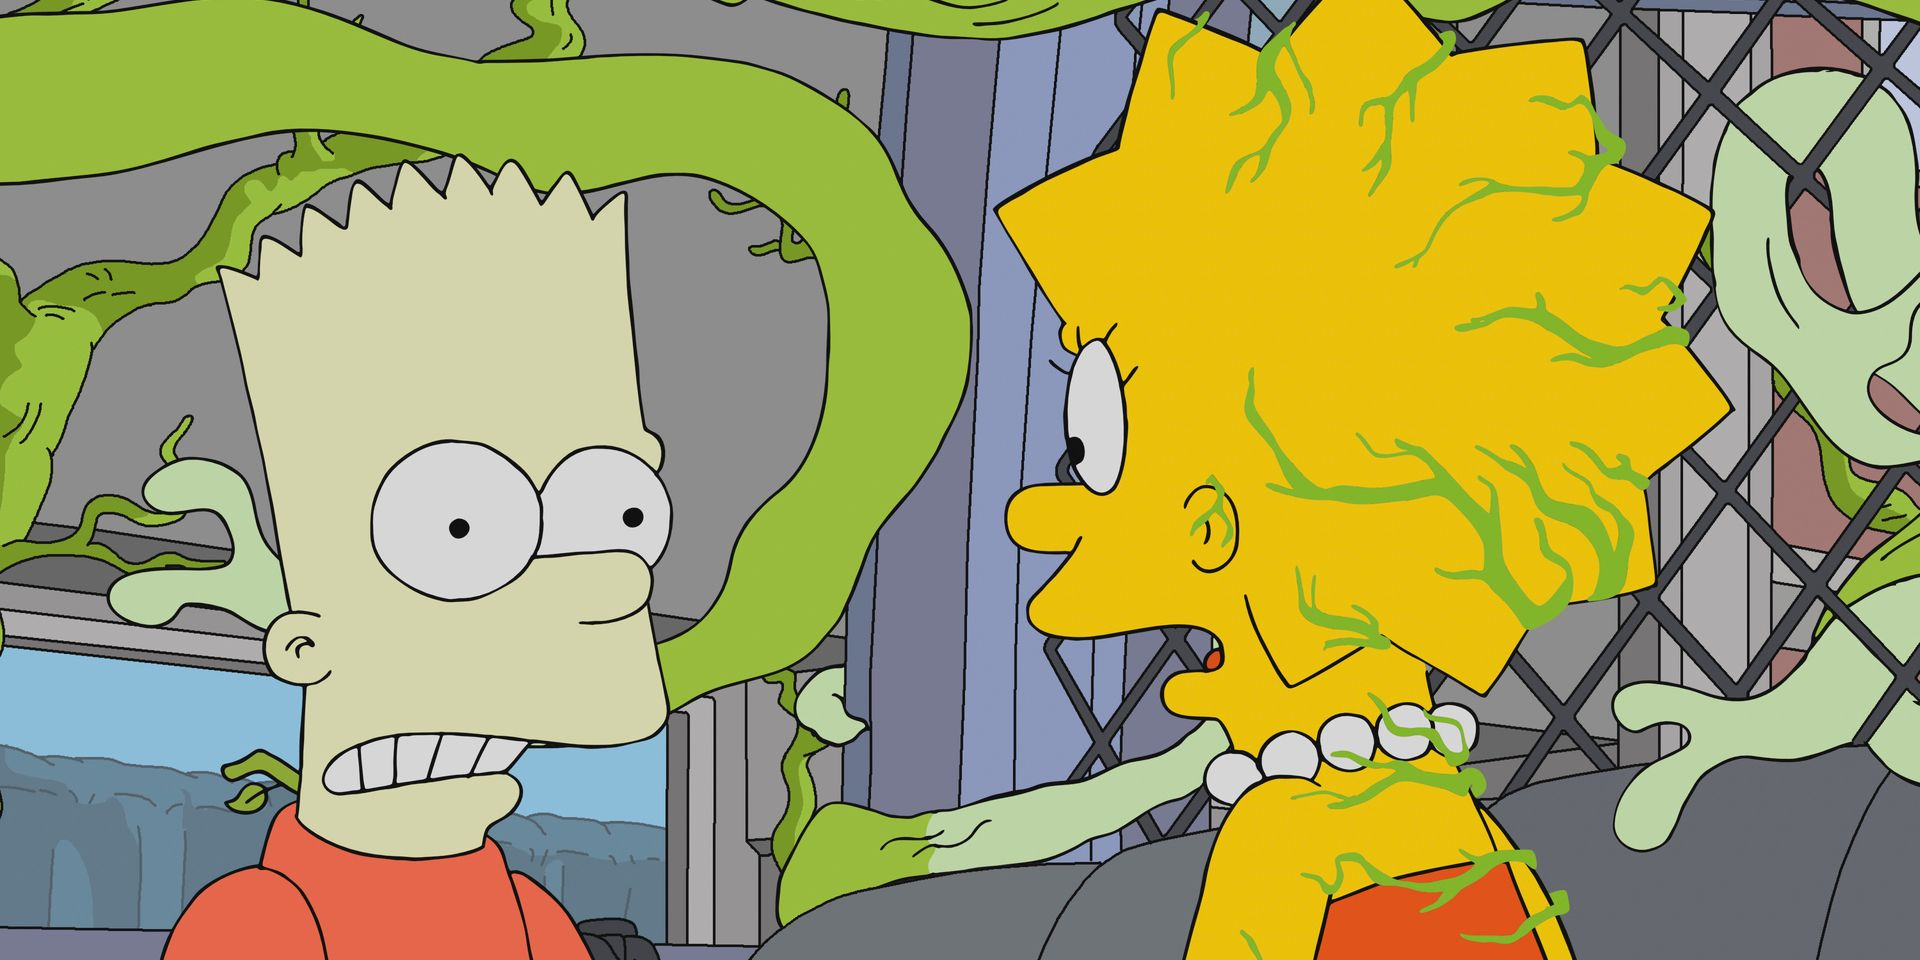 The Simpsons Treehouse of Horror XXIX Review: Hope You Like Movie Parodies